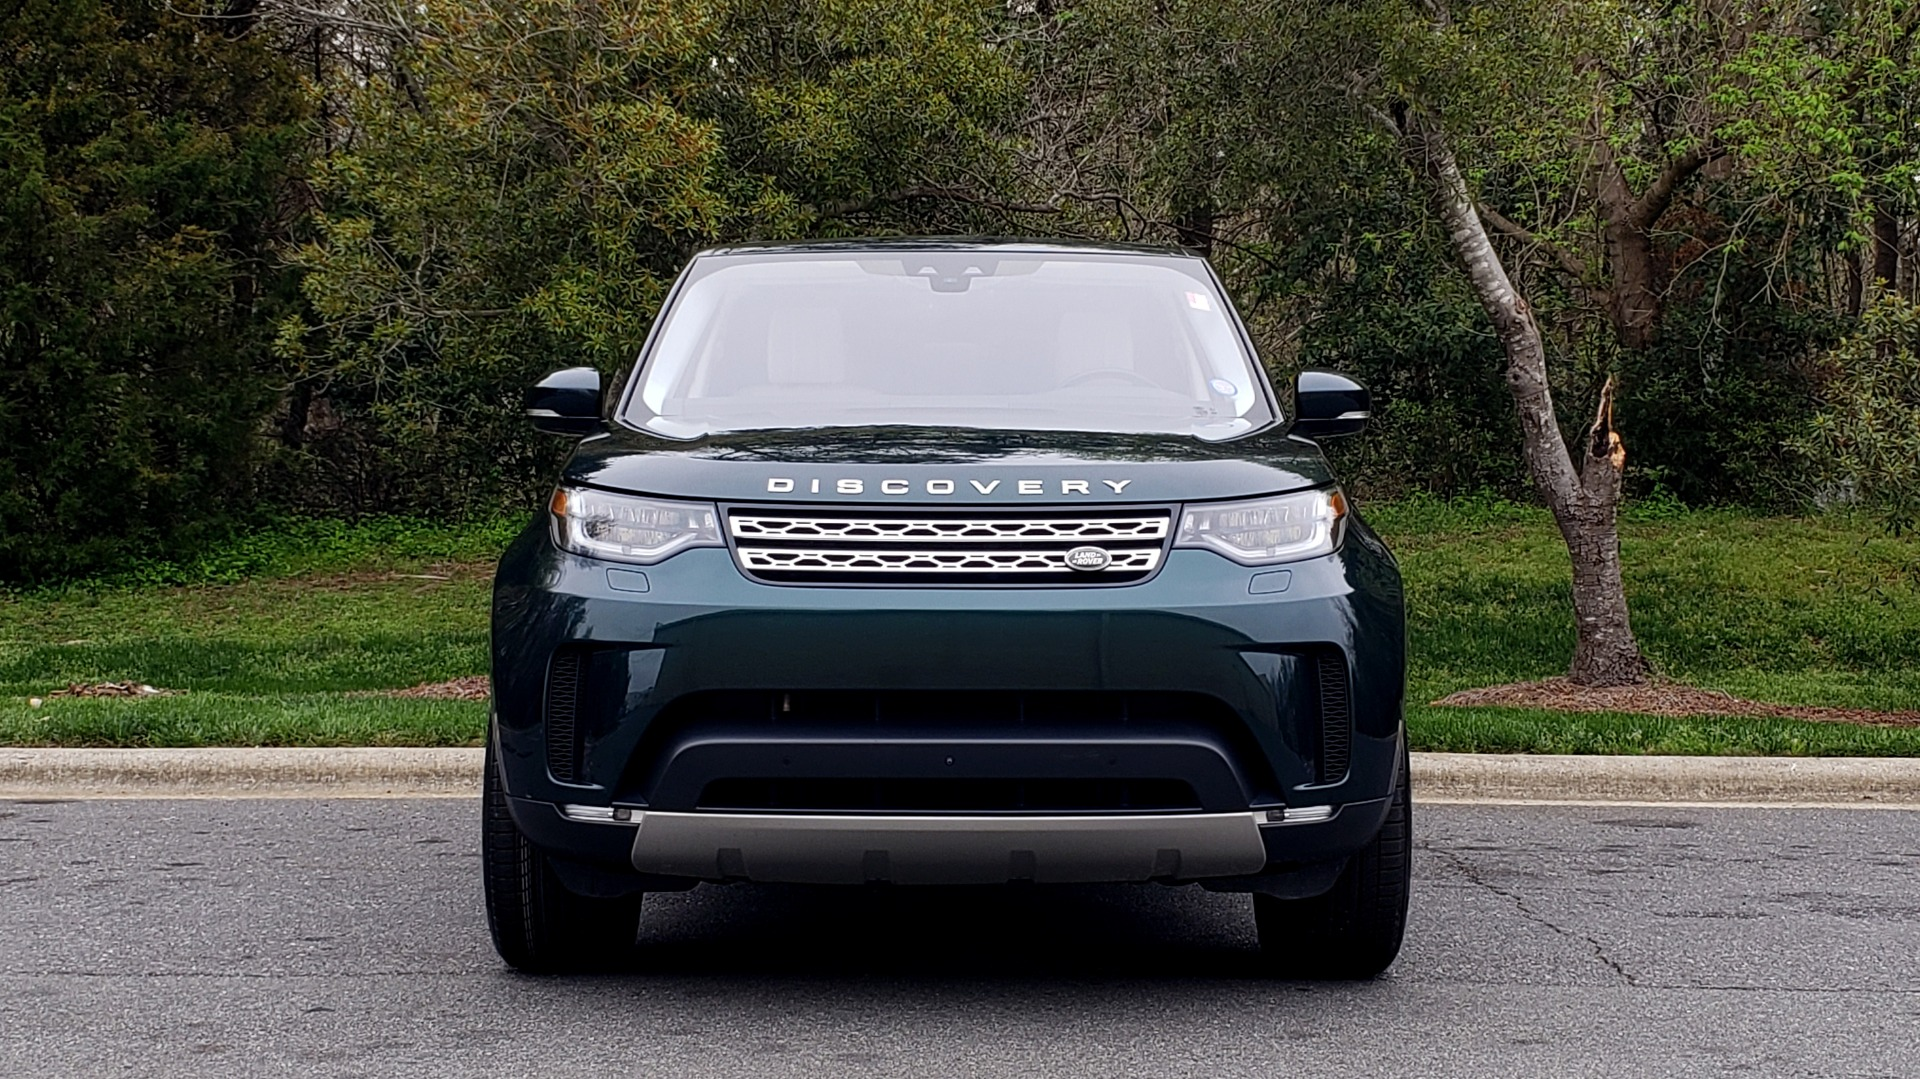 Used 2017 Land Rover DISCOVERY HSE LUXURY / 4WD / NAV / VISION ASST / DRIVE PKG / MERIDIAN for sale Sold at Formula Imports in Charlotte NC 28227 29